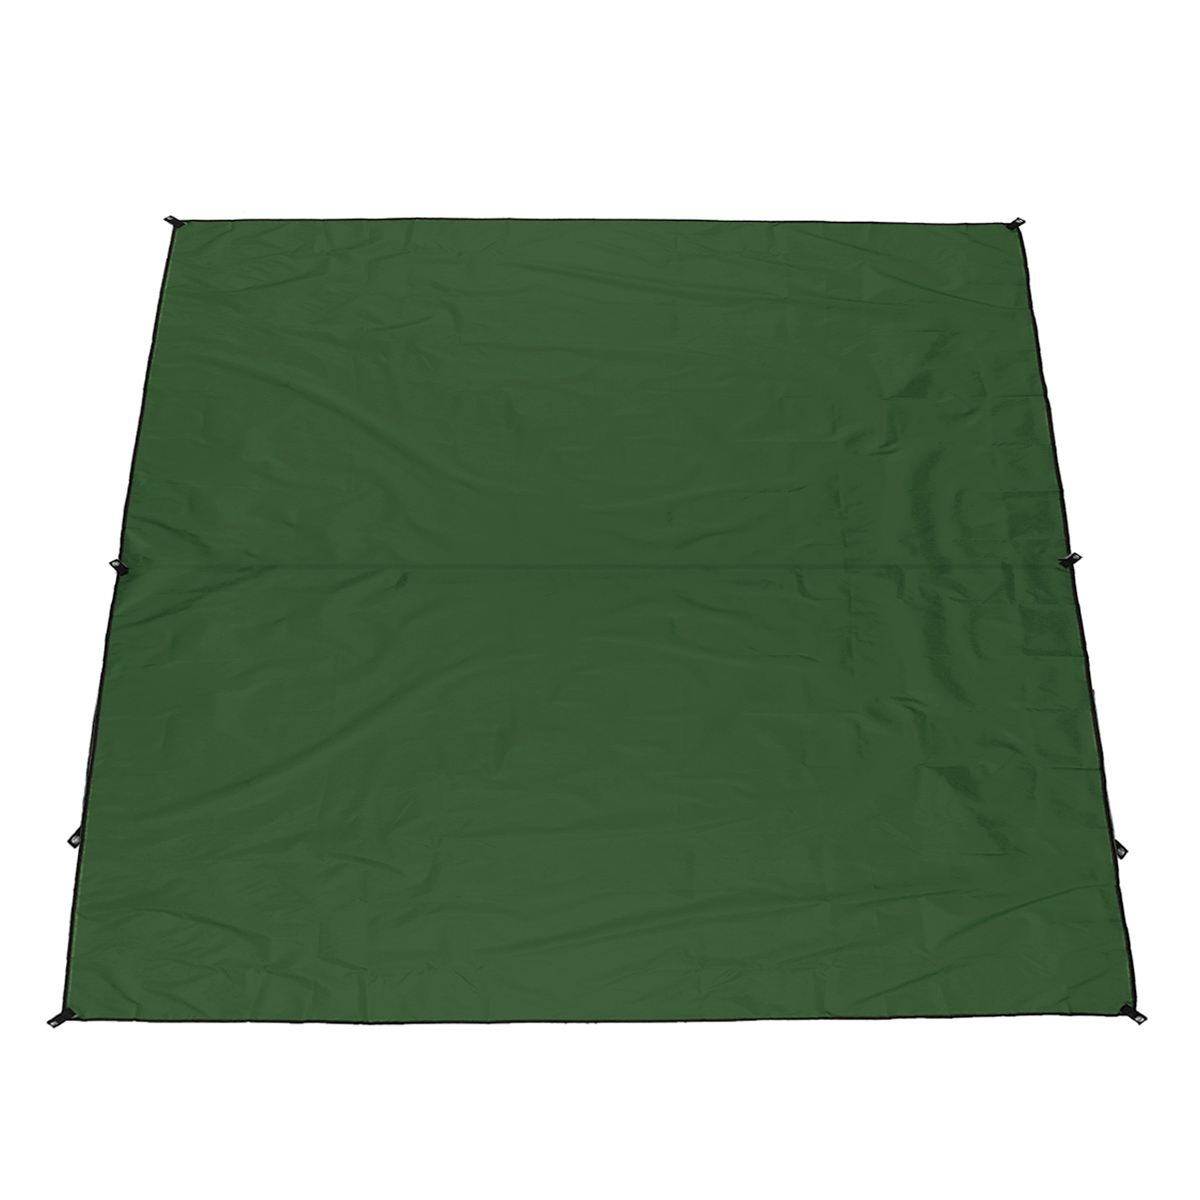 ALI shop ...  ... 33010964848 ... 5 ... Waterproof Tent Shade Beach Sun Shelter Tarp Ultralight UV Garden Awning Canopy Sunshade Outdoor Camping Hammock Rain Fly ...